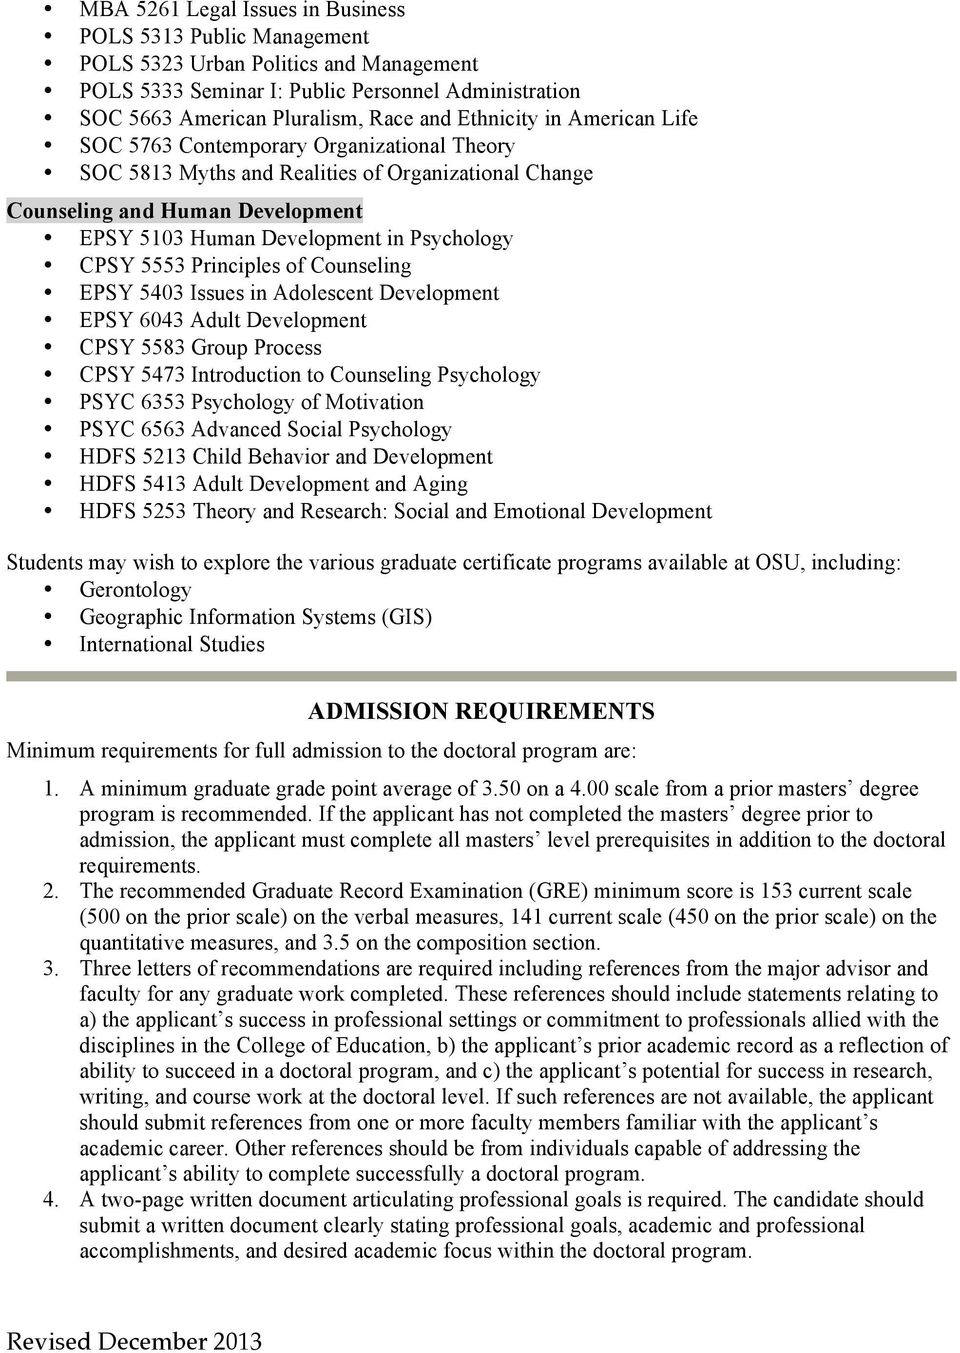 CPSY 5553 Principles of Counseling EPSY 5403 Issues in Adolescent Development EPSY 6043 Adult Development CPSY 5583 Group Process CPSY 5473 Introduction to Counseling Psychology PSYC 6353 Psychology